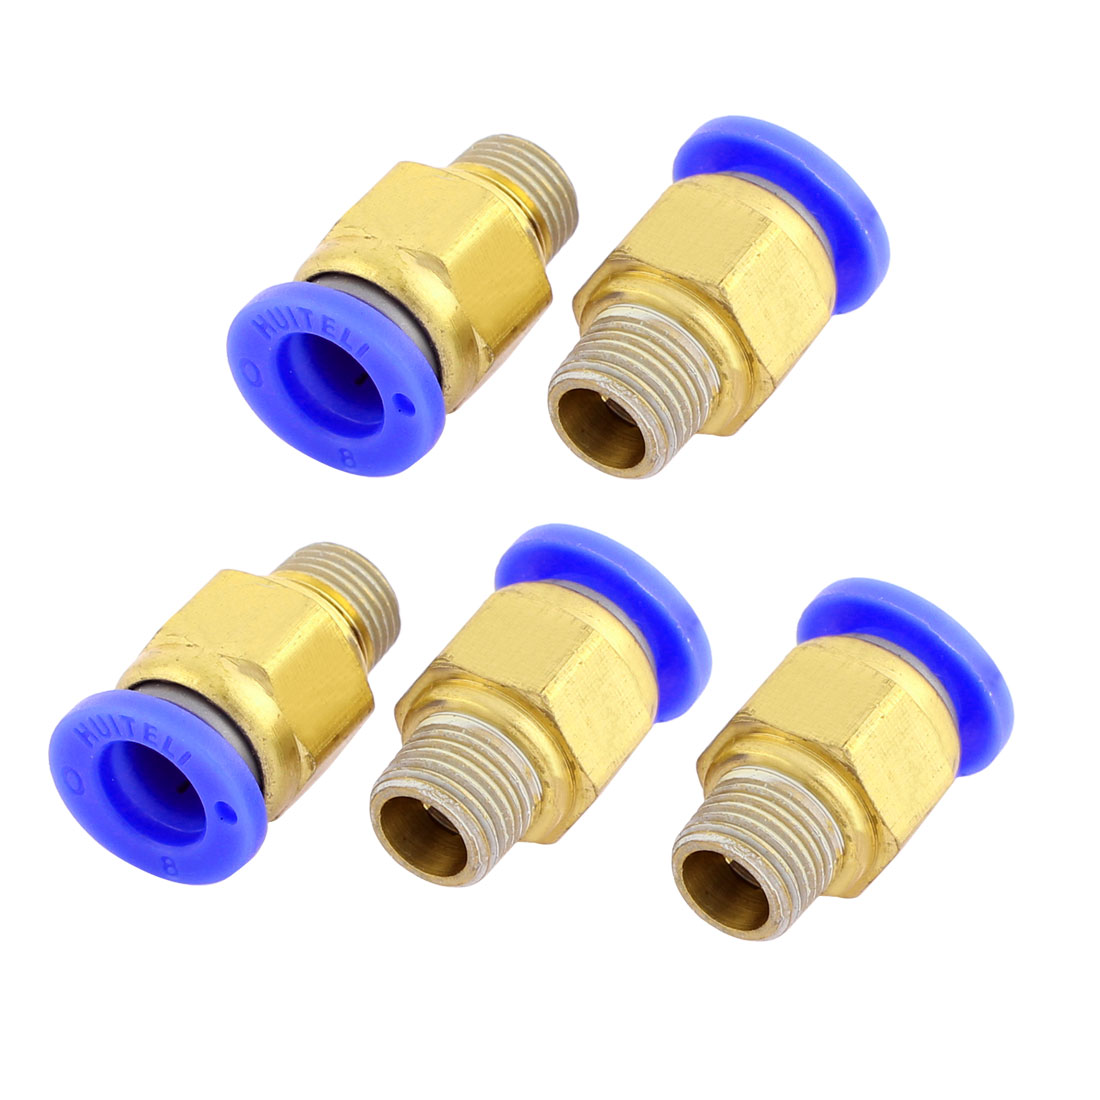 5pcs 10mm 1/8BSP Male Thread 8mm OD Push in Pipe Straight Air Pneumatic Quick Coupler Fitting Connector